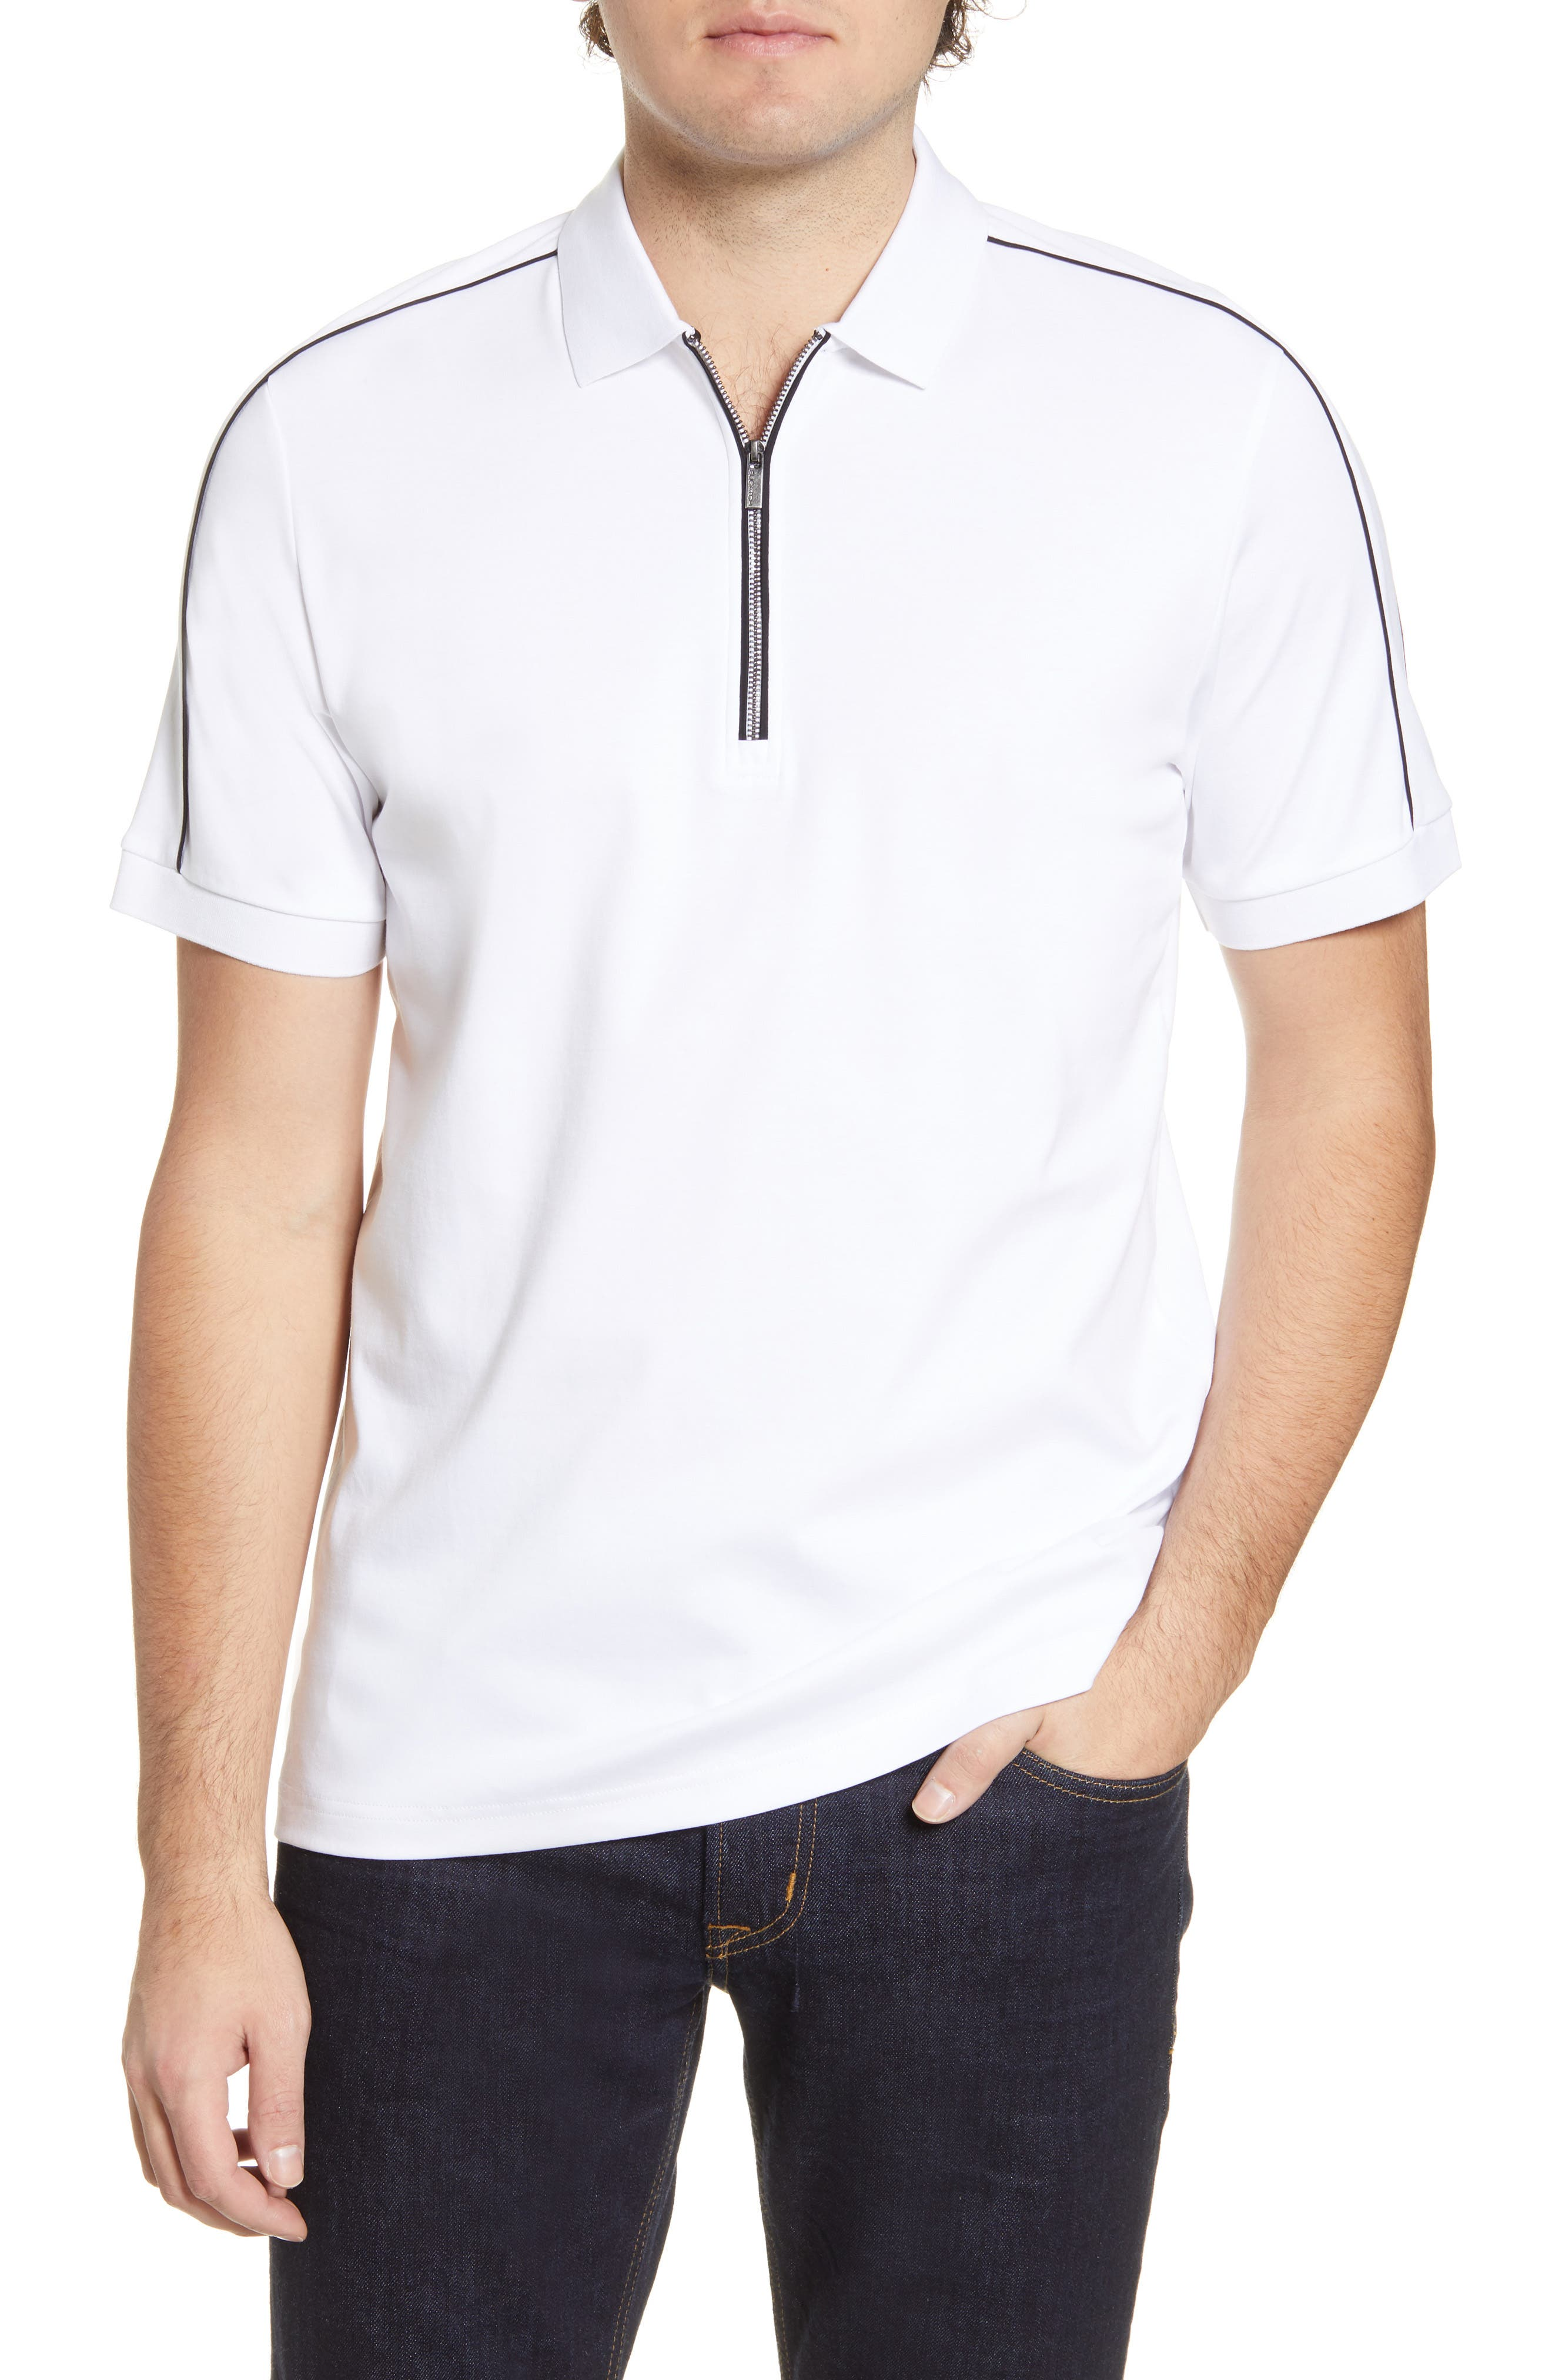 Sport contrast details touch up a versatile polo shirt cut from pure pima cotton. Style Name: Bugatchi Pima Cotton Zip Polo. Style Number: 5988104. Available in stores.